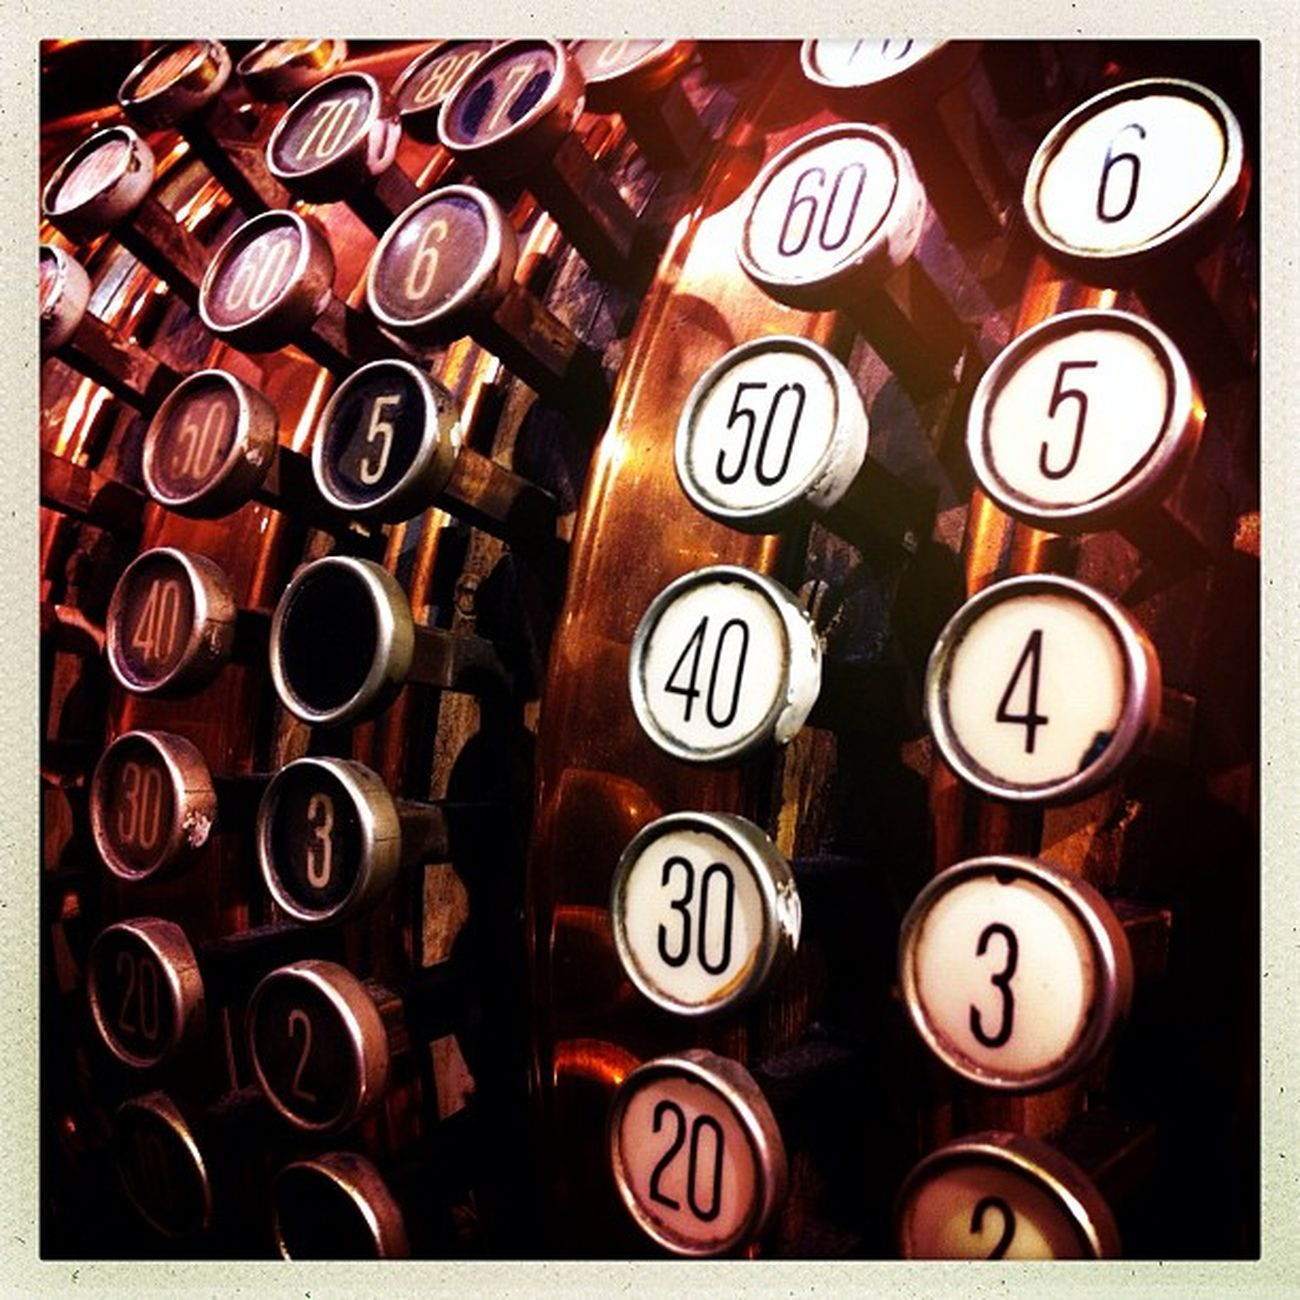 digits Addingmachine Hipstamatic Essen Germany Deutschland Calculator Ruhrgebiet Zeche Zollverein Digits Zechezollverein